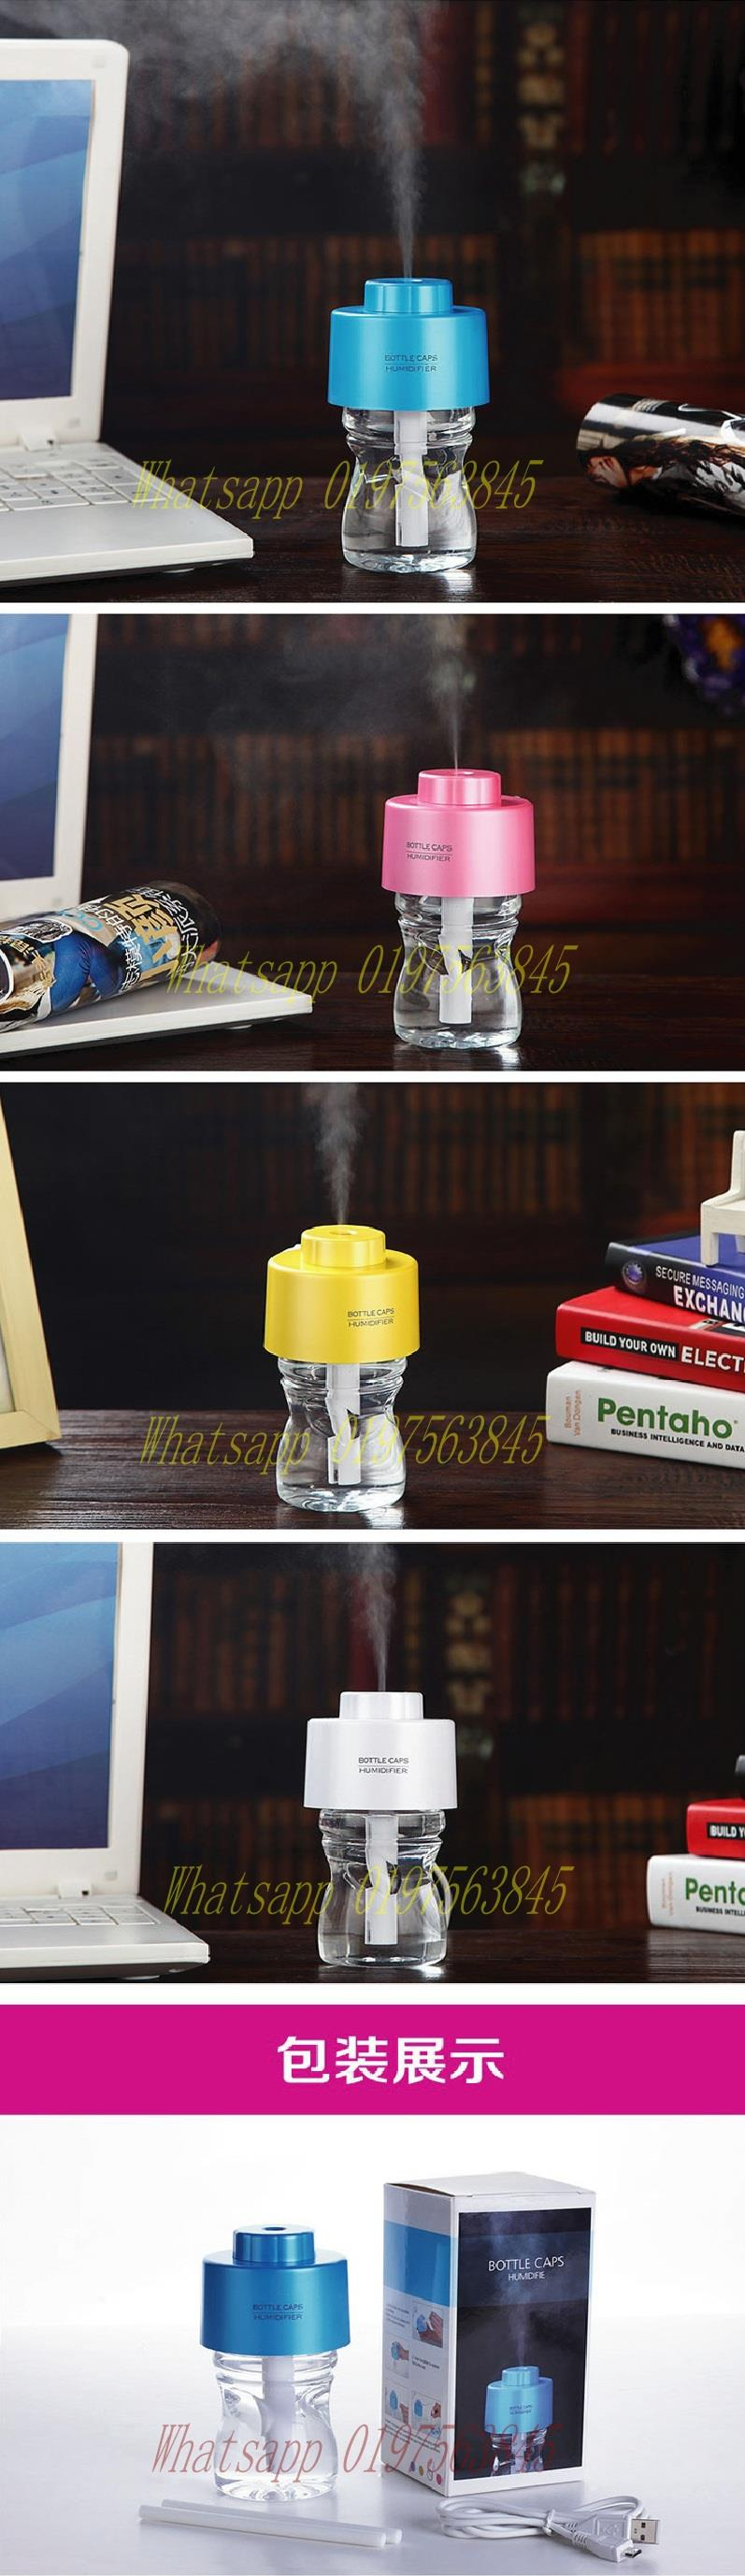 Portable USB Bottle Caps Air Humidifier with Bottle & LED Linght